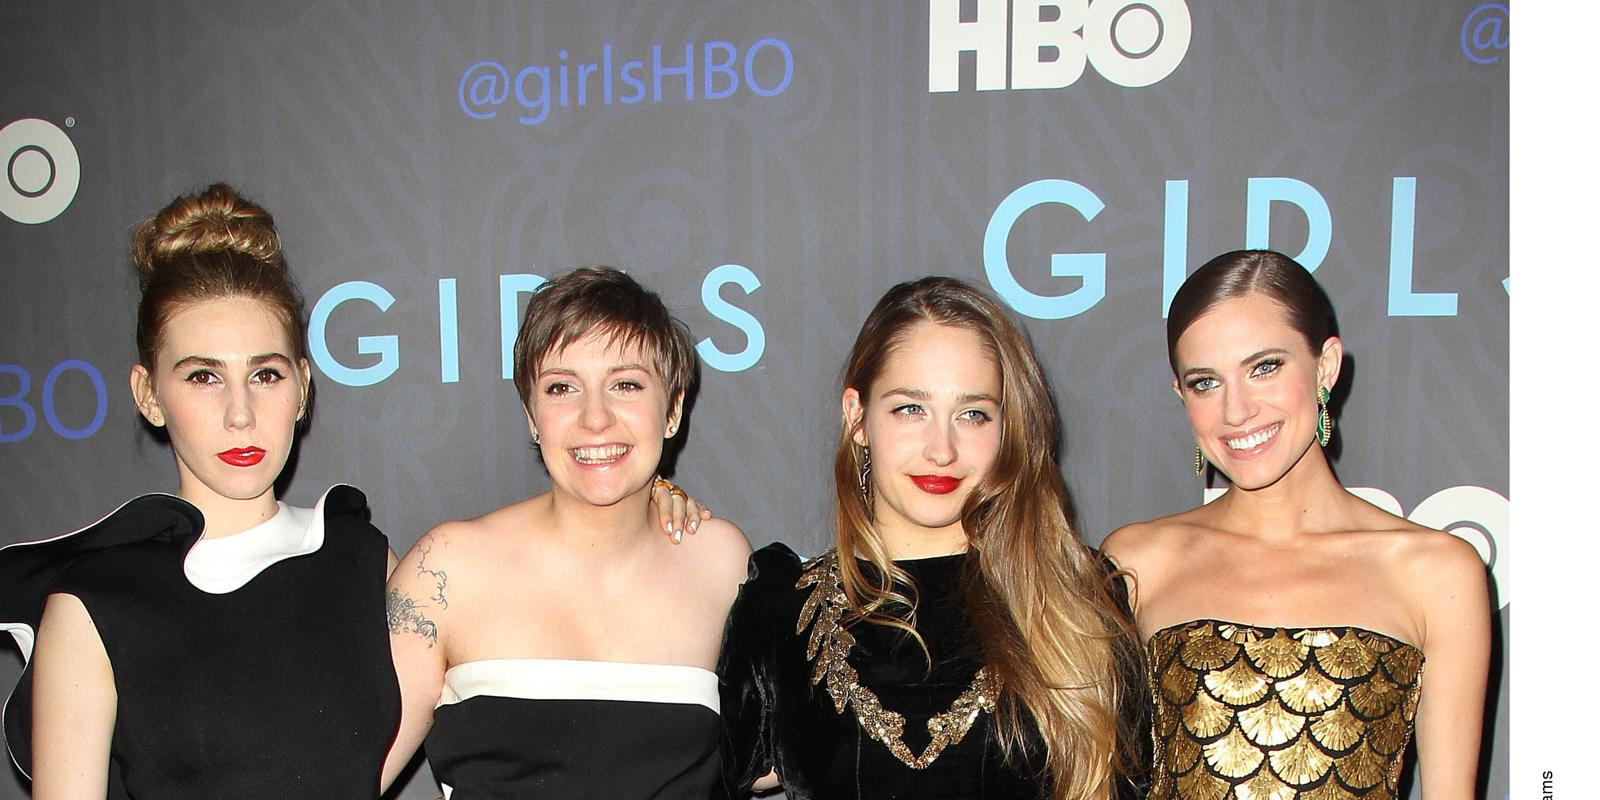 Interesting girls hbo show cast